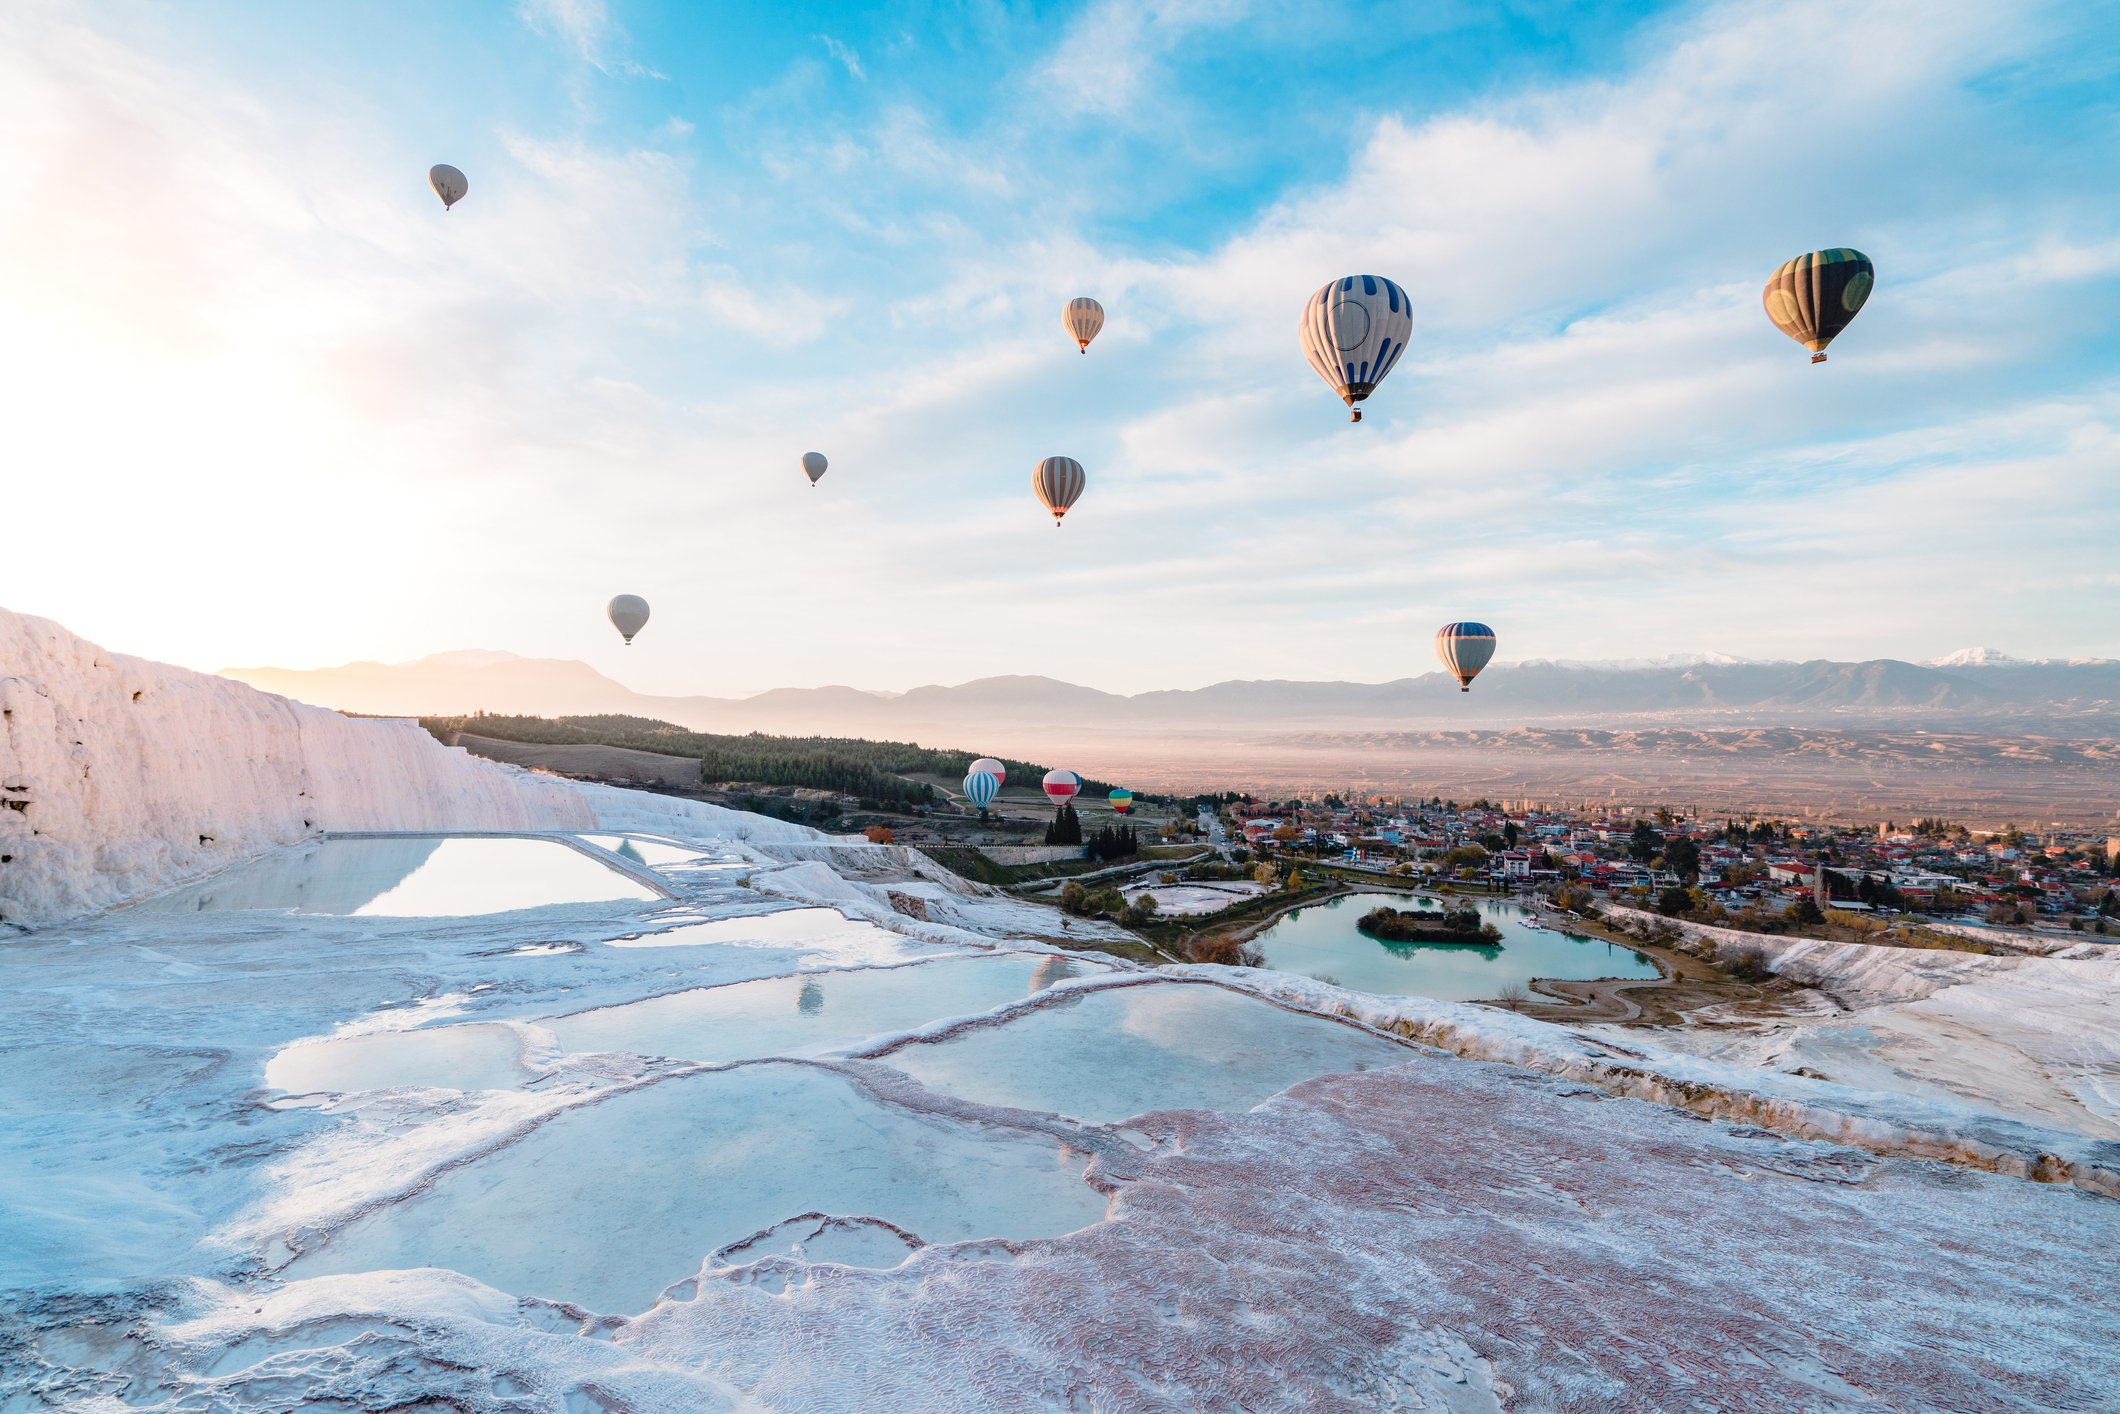 Hot air balloons are a great way to see the limestone terraces and ruins of the ancient city. (iStock Photo)